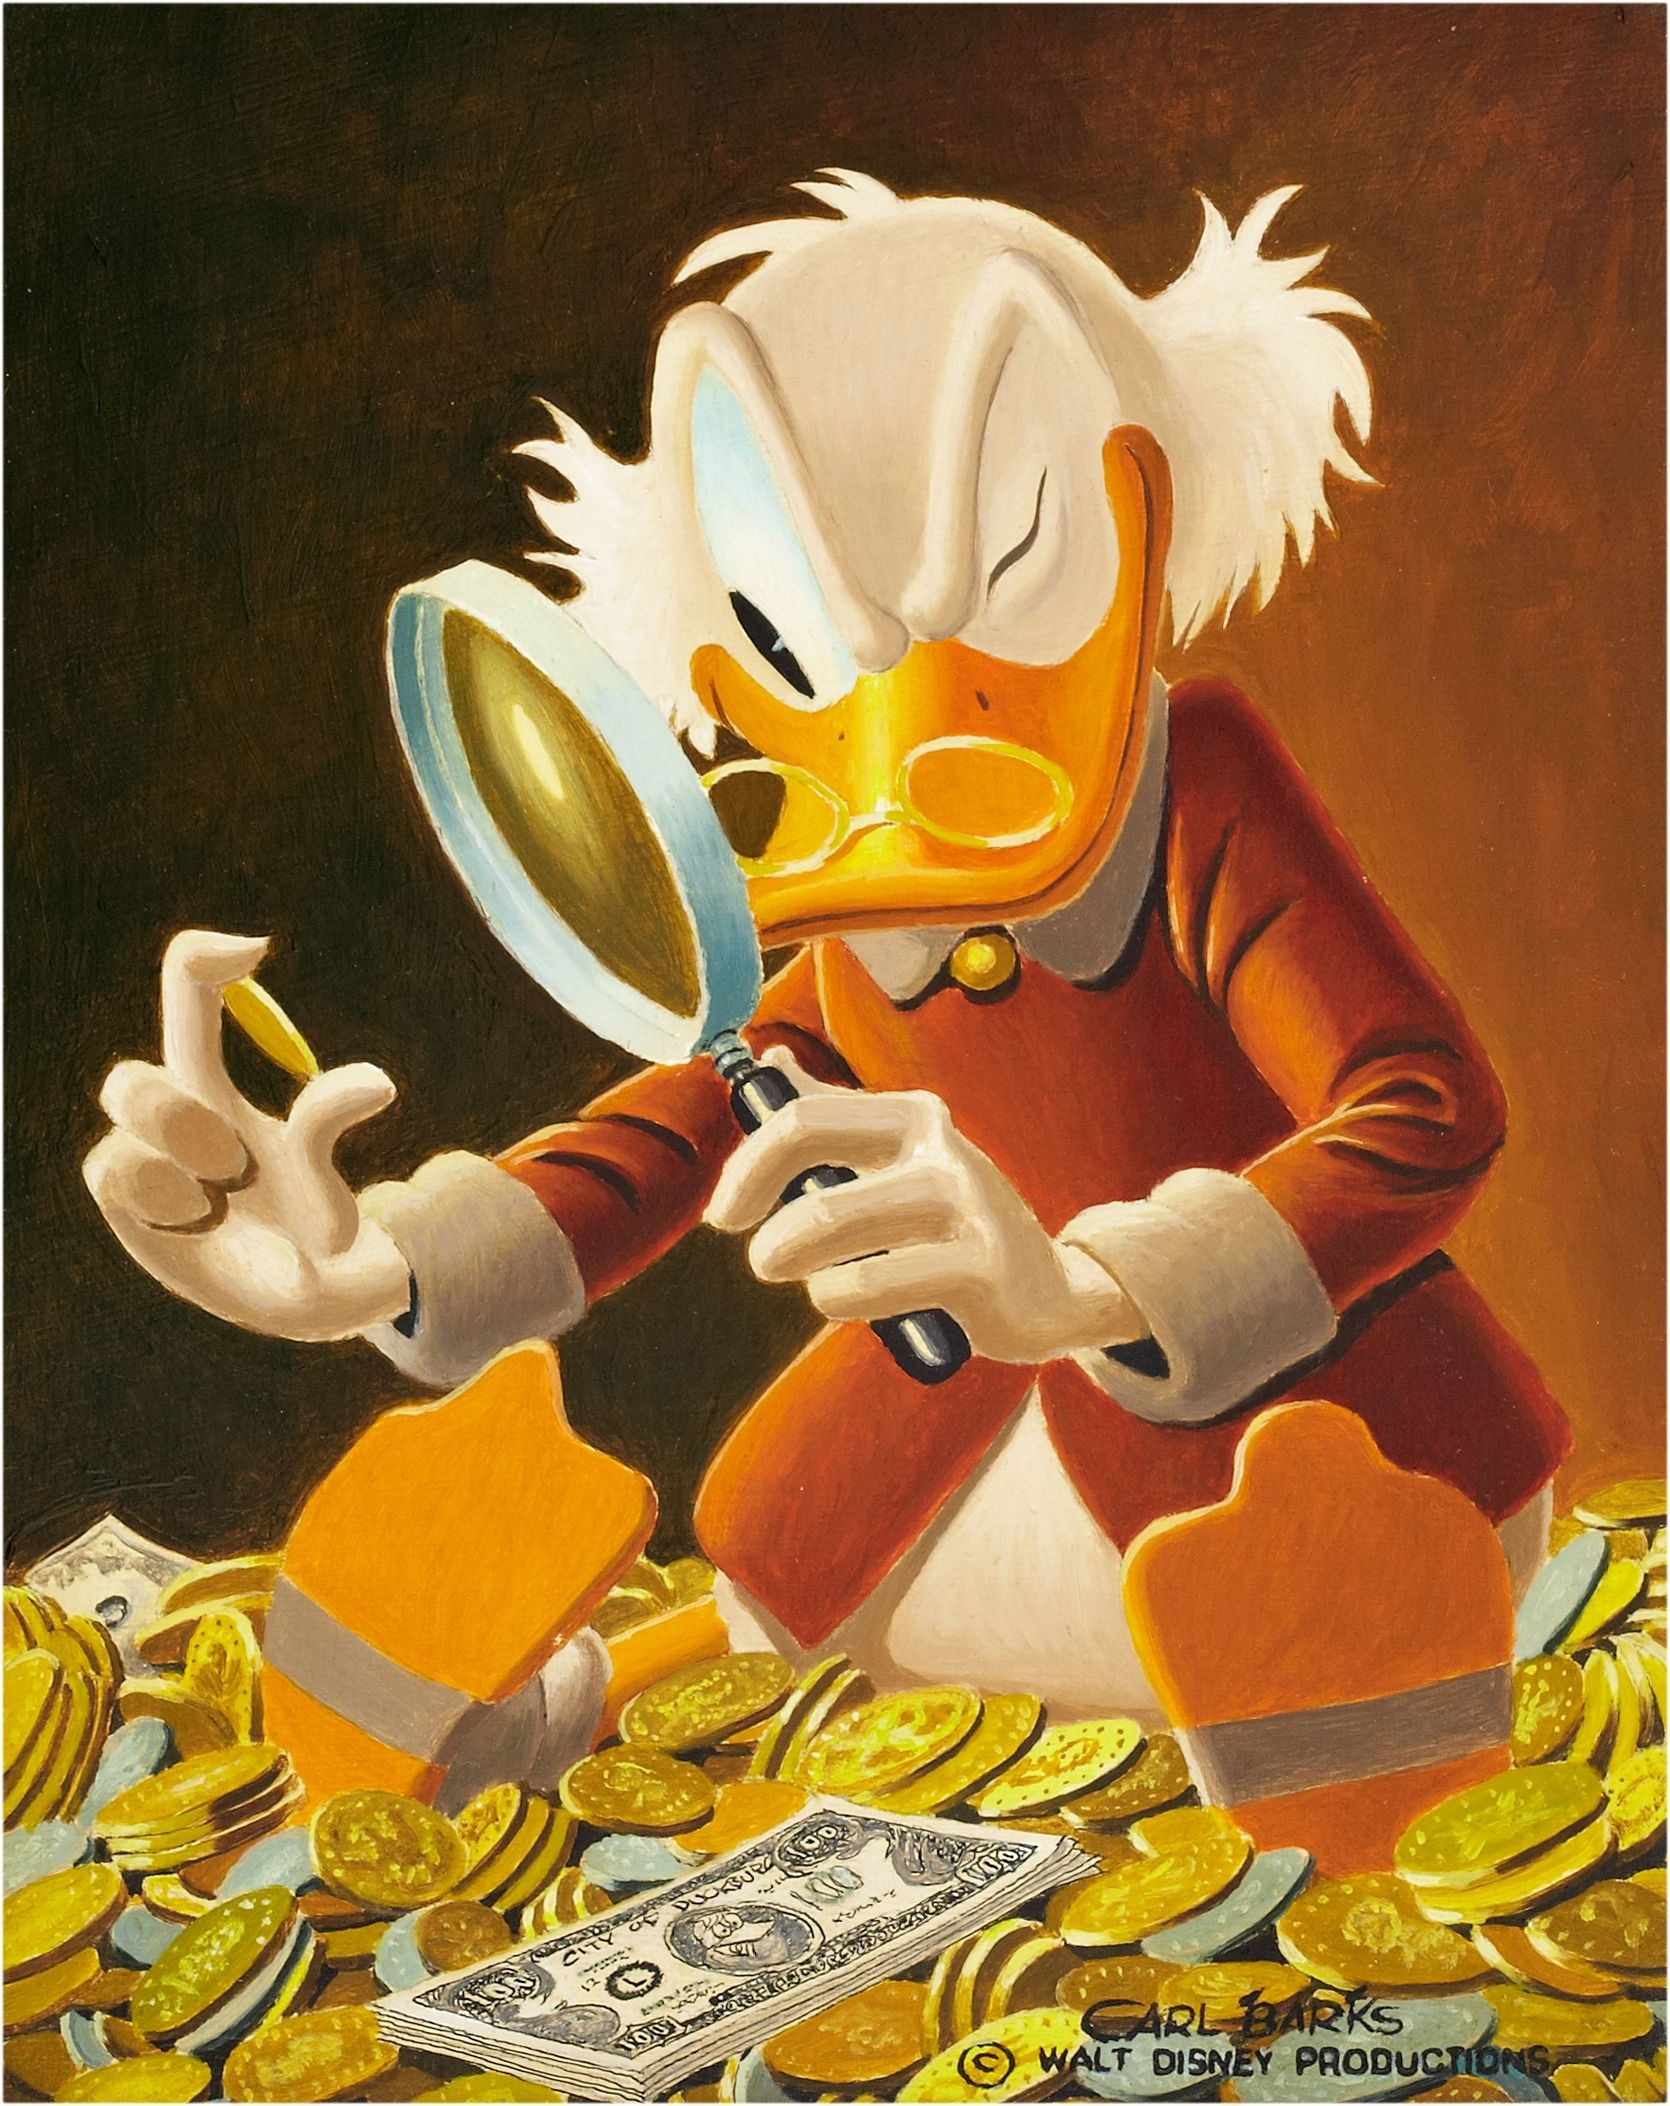 Res: 1670x2106, Uncle Scrooge - The Expert by Carl Barks